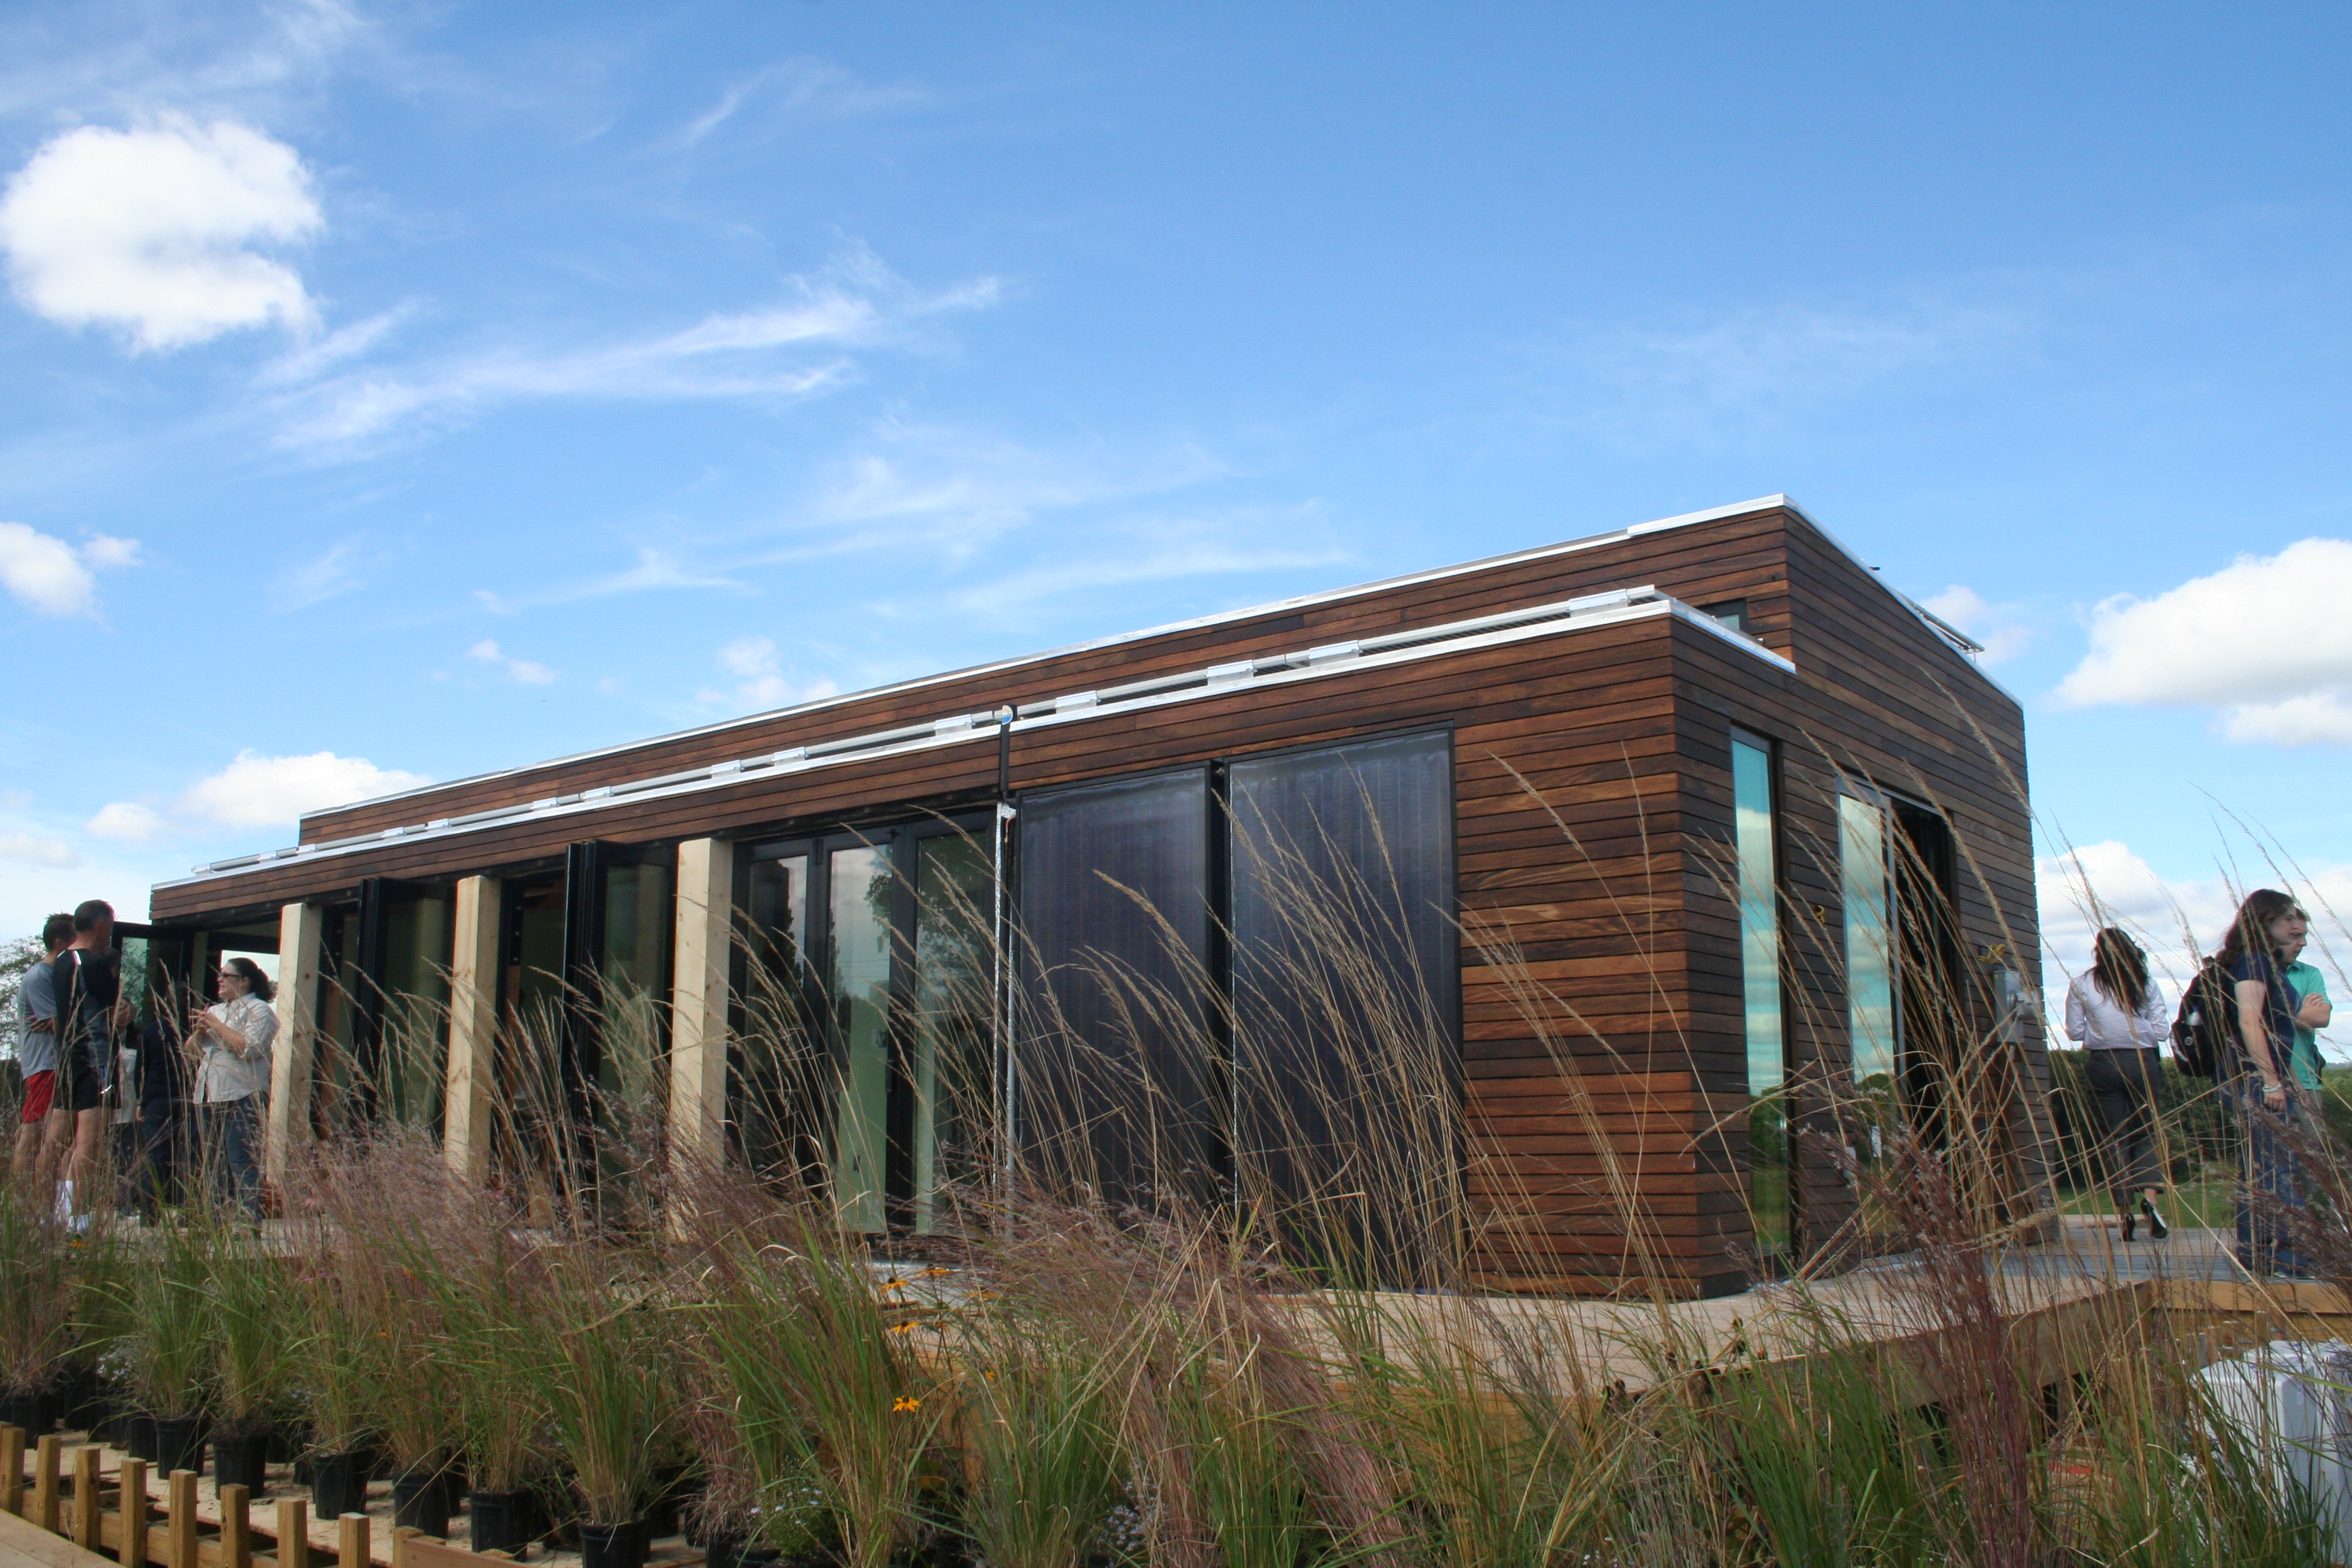 Geliebte Solar House Finds Its Home in Pittsburgh   The Penn Stater Magazine &CW_34